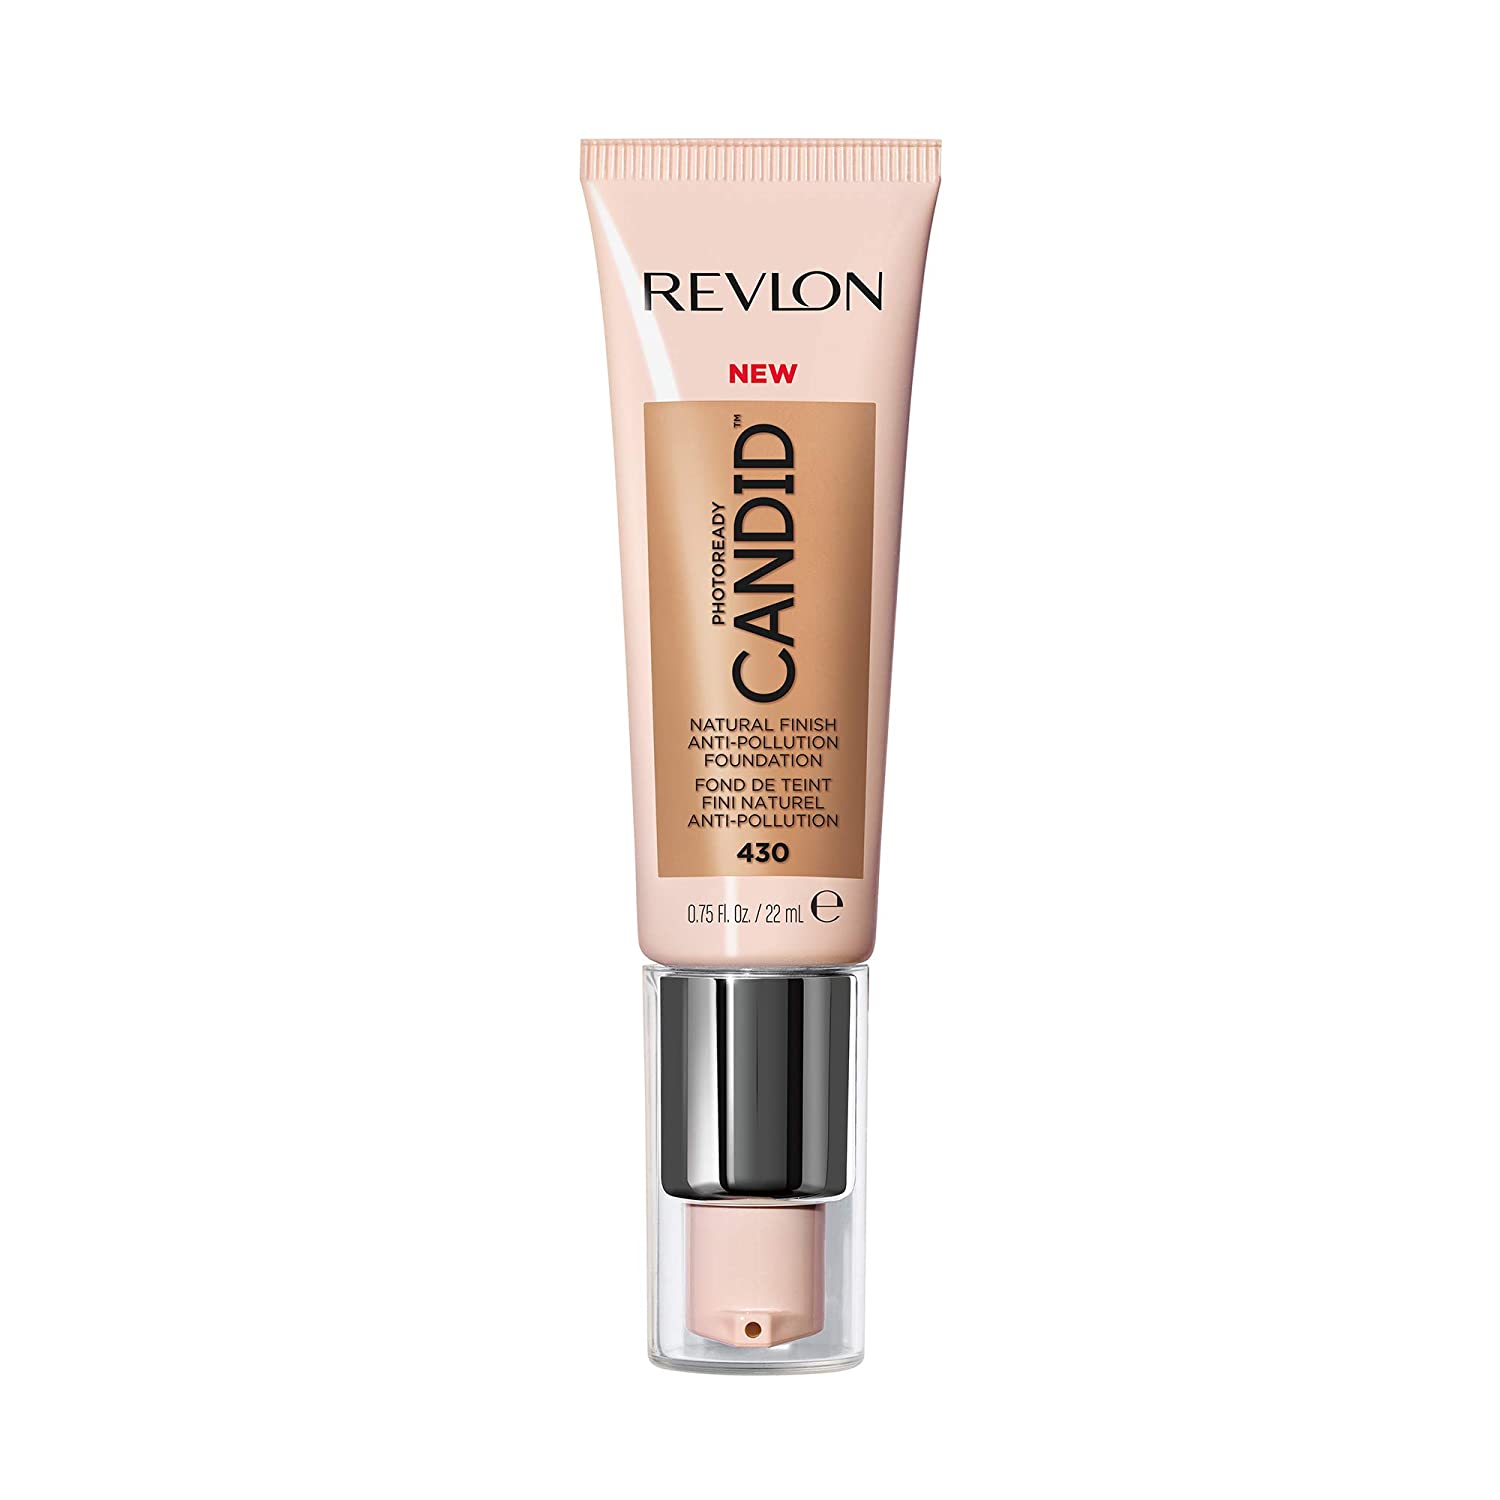 Revlon PhotoReady Candid Natural Finish Foundation, with Anti-Pollution, Antioxidant, Anti-Blue Light Ingredients, without Parabens, Pthalates and Fragrances; Honey Beige.75 Fluid Oz